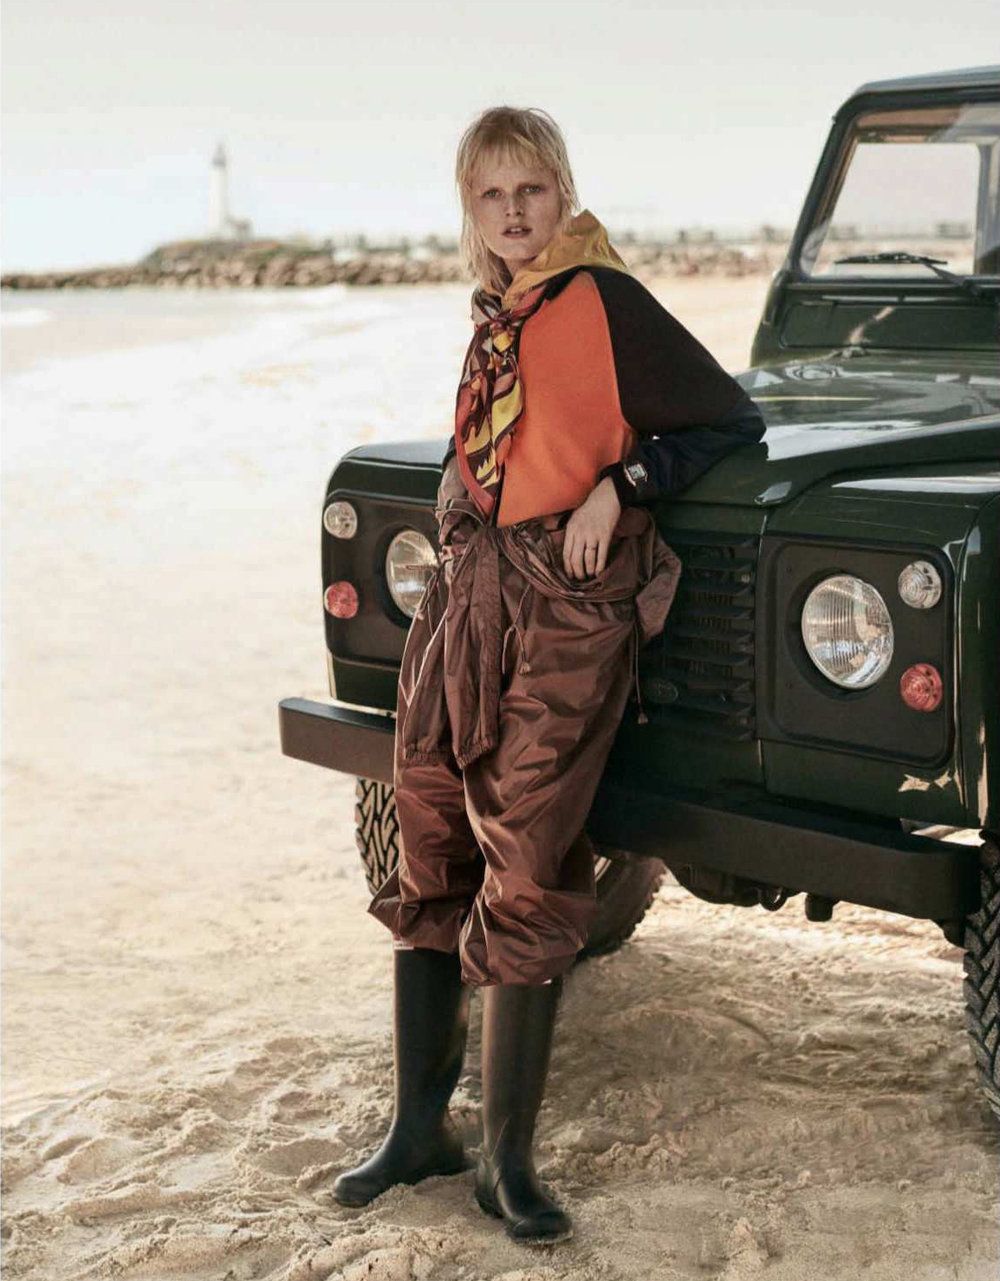 Hanne Gaby Odiele by Giampaolo Sgura for Vogue Germany Sept 2018 (13).jpg